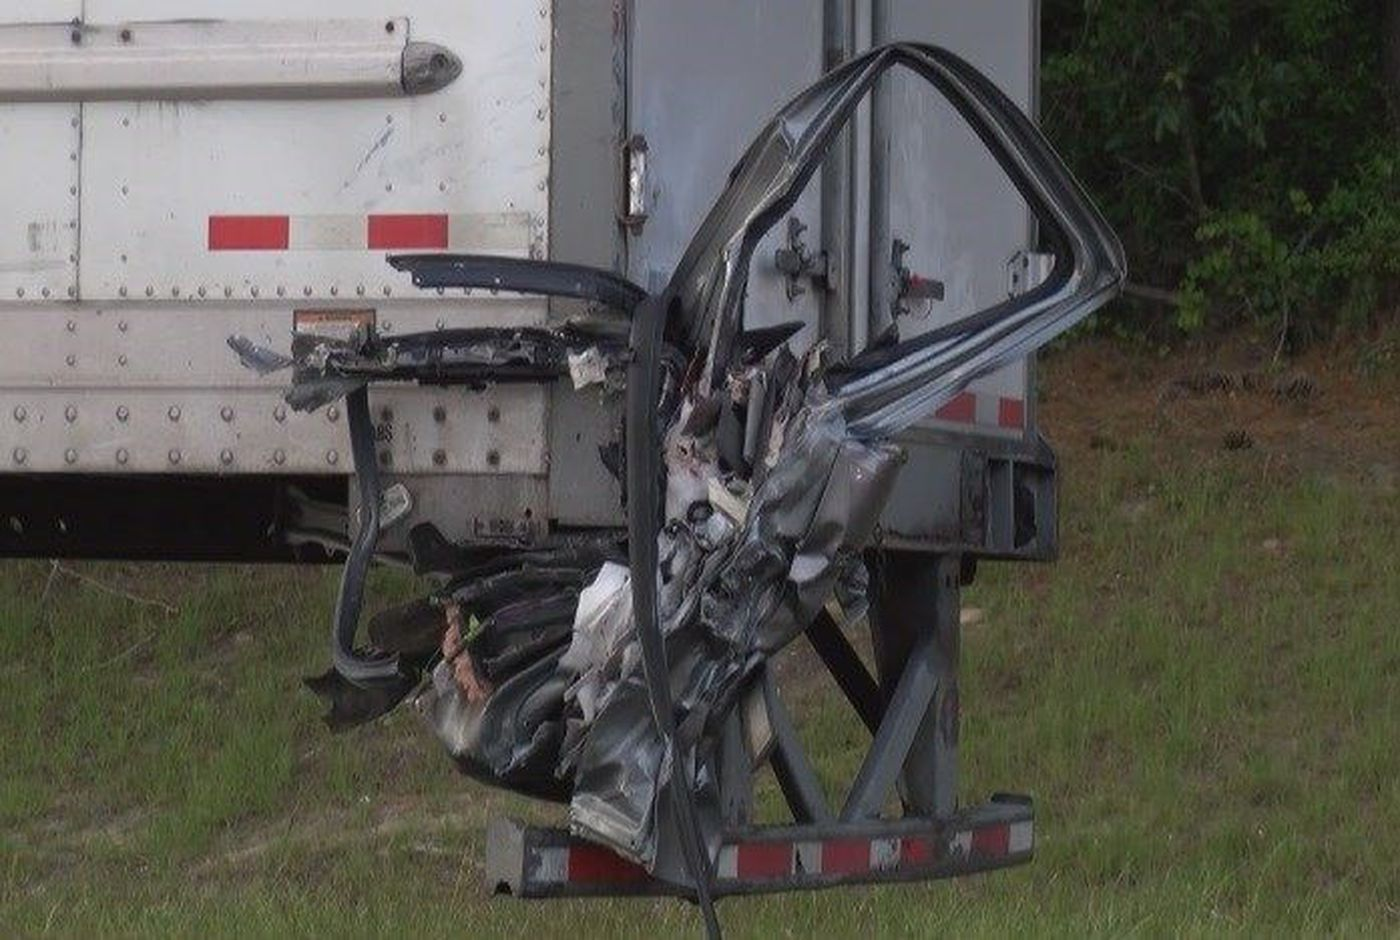 GSP investigates fatal crash on I-16 near Hwy 119